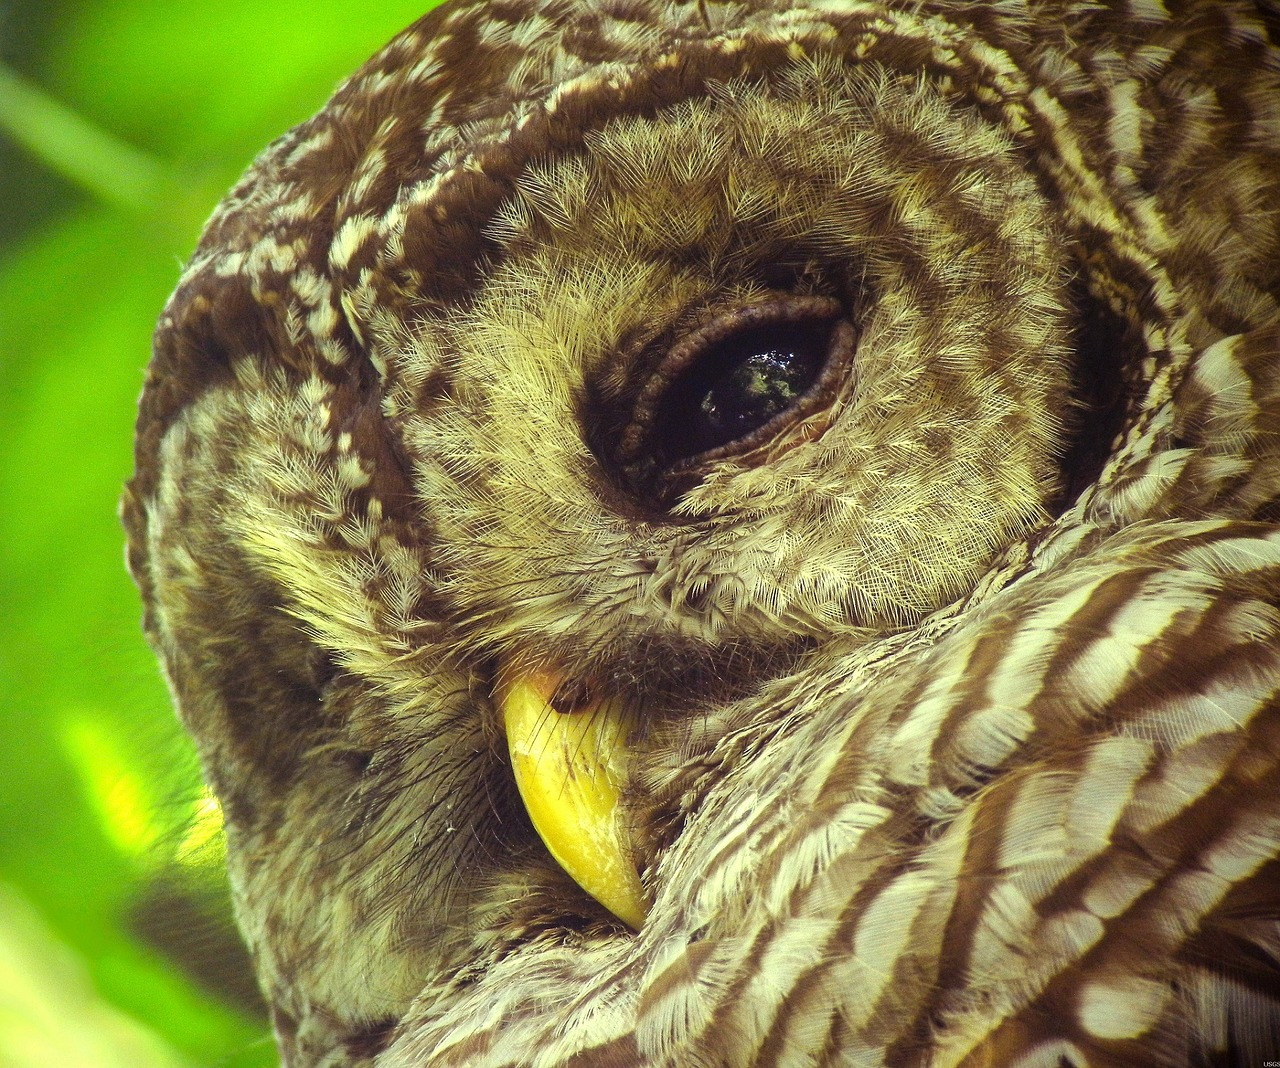 barred owl - where are barred owls